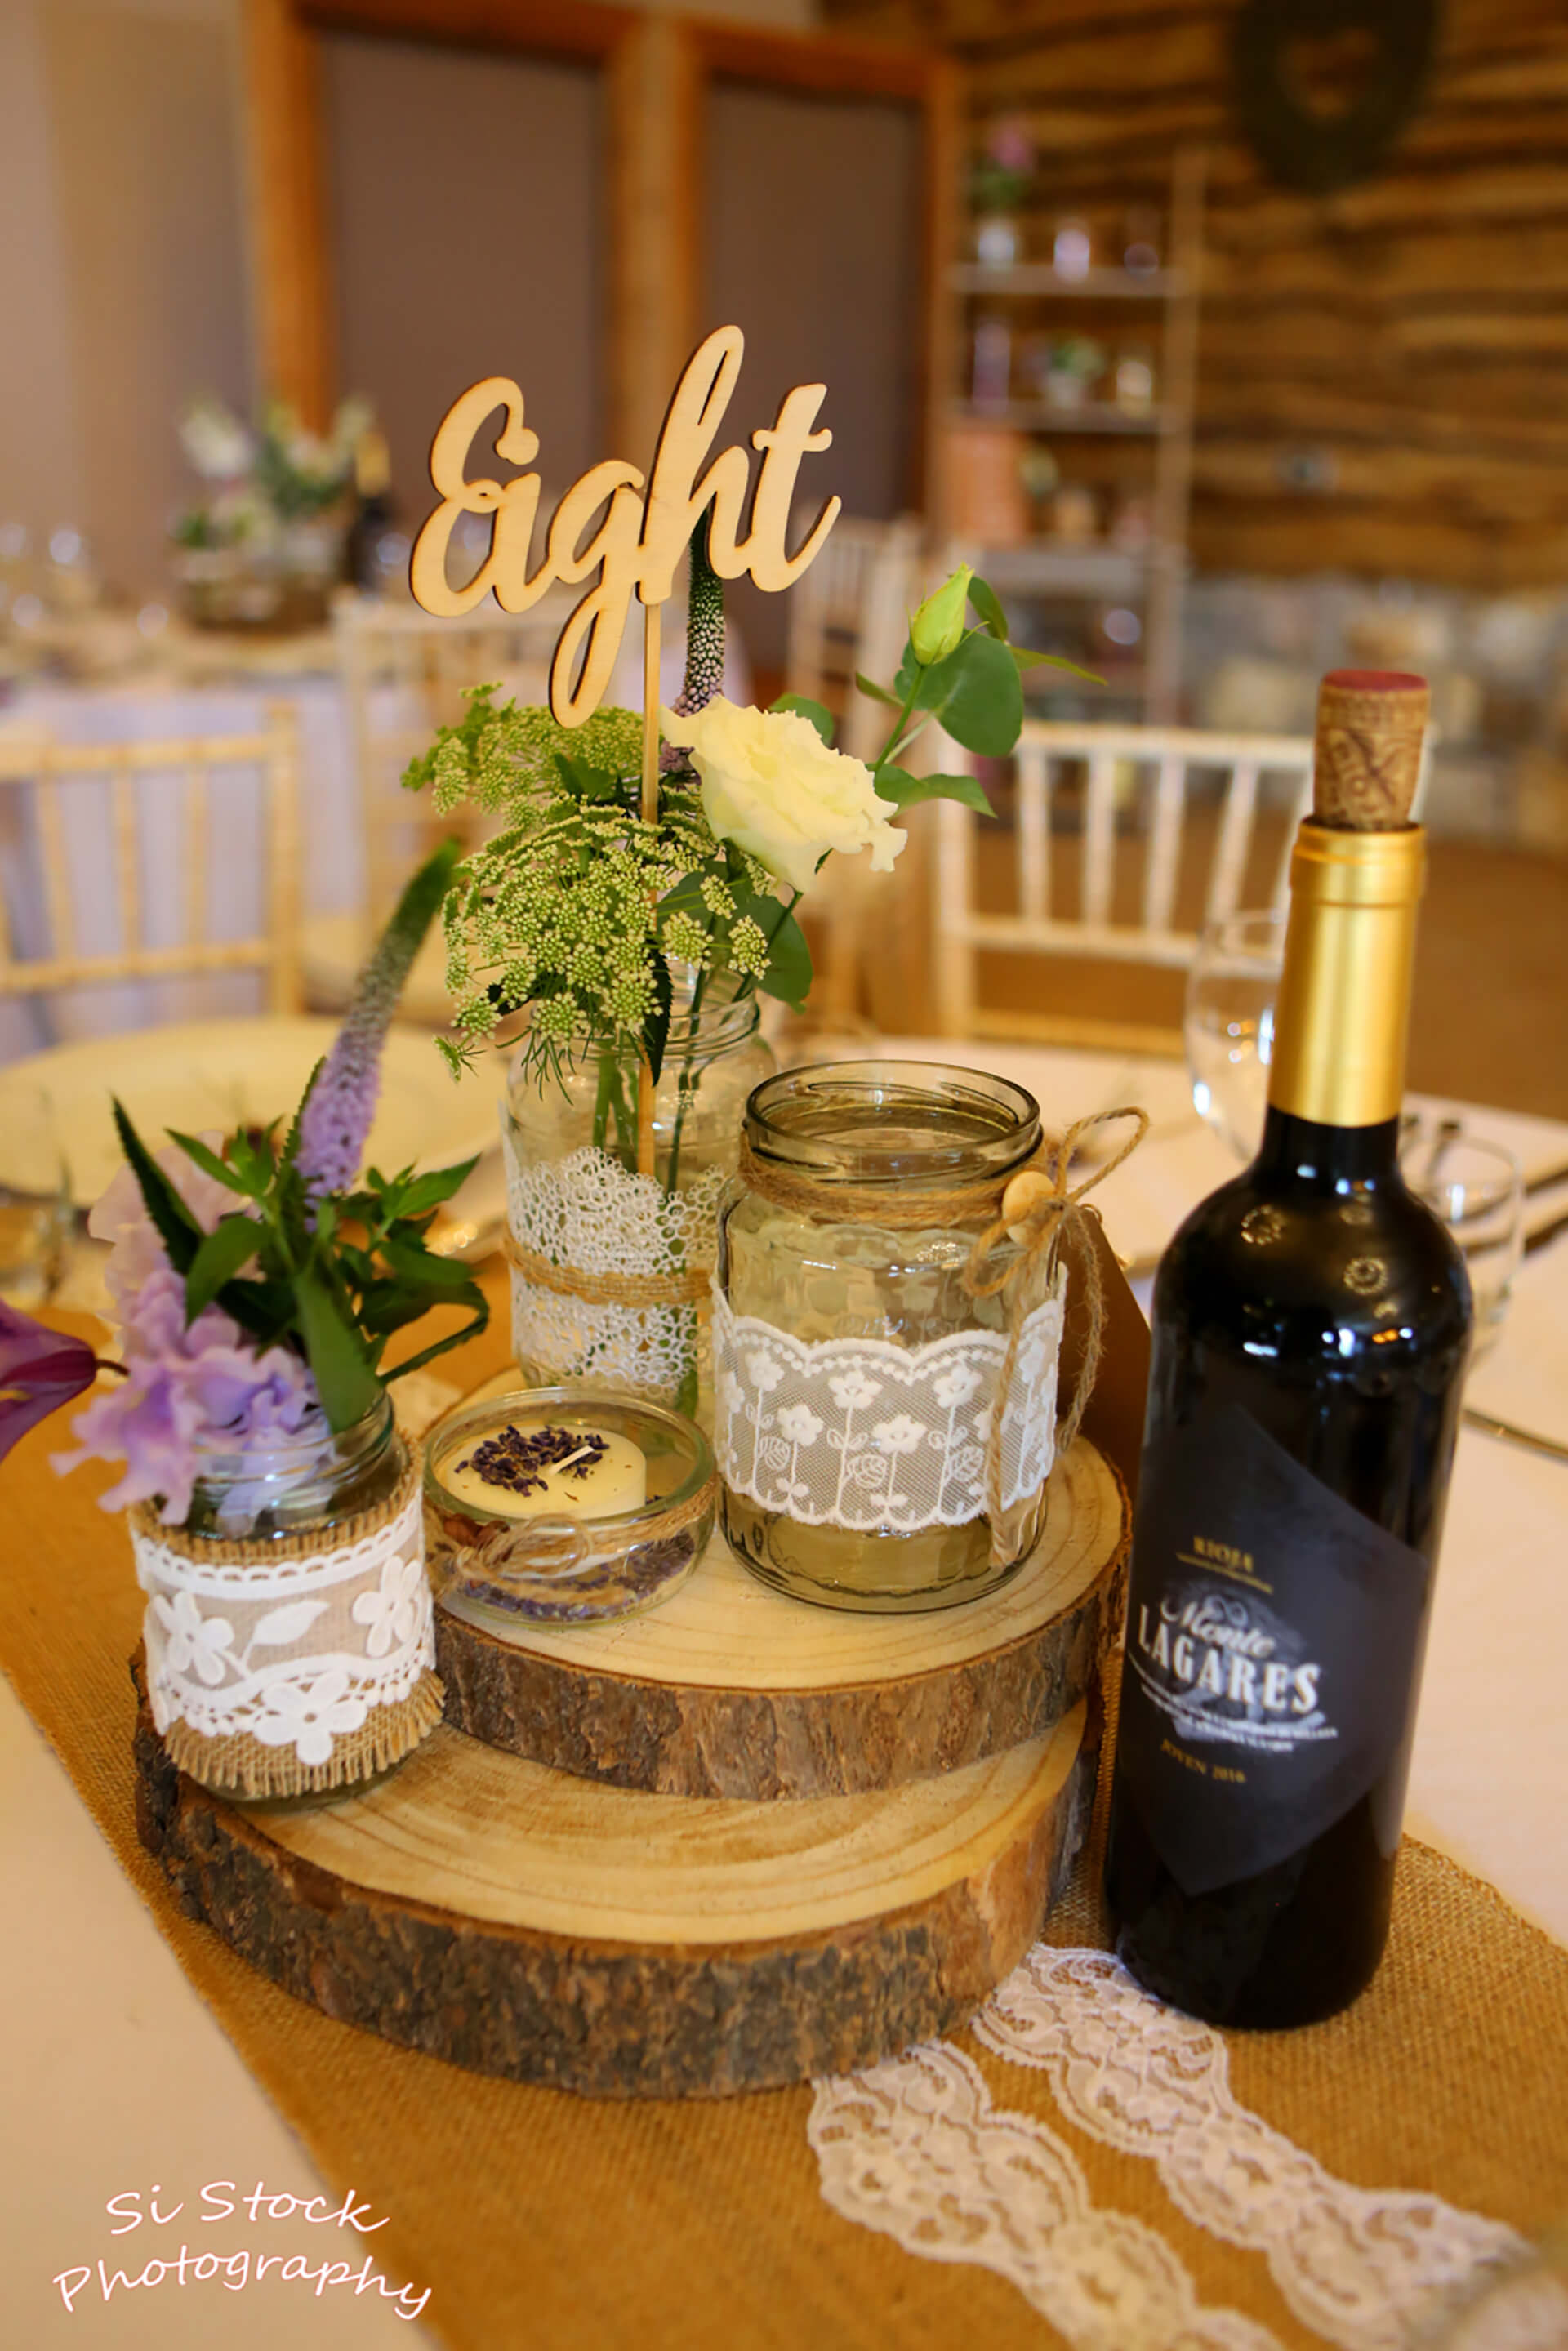 Aren't Katie and James' centerpieces just beautiful? Photo by Simon Stock.